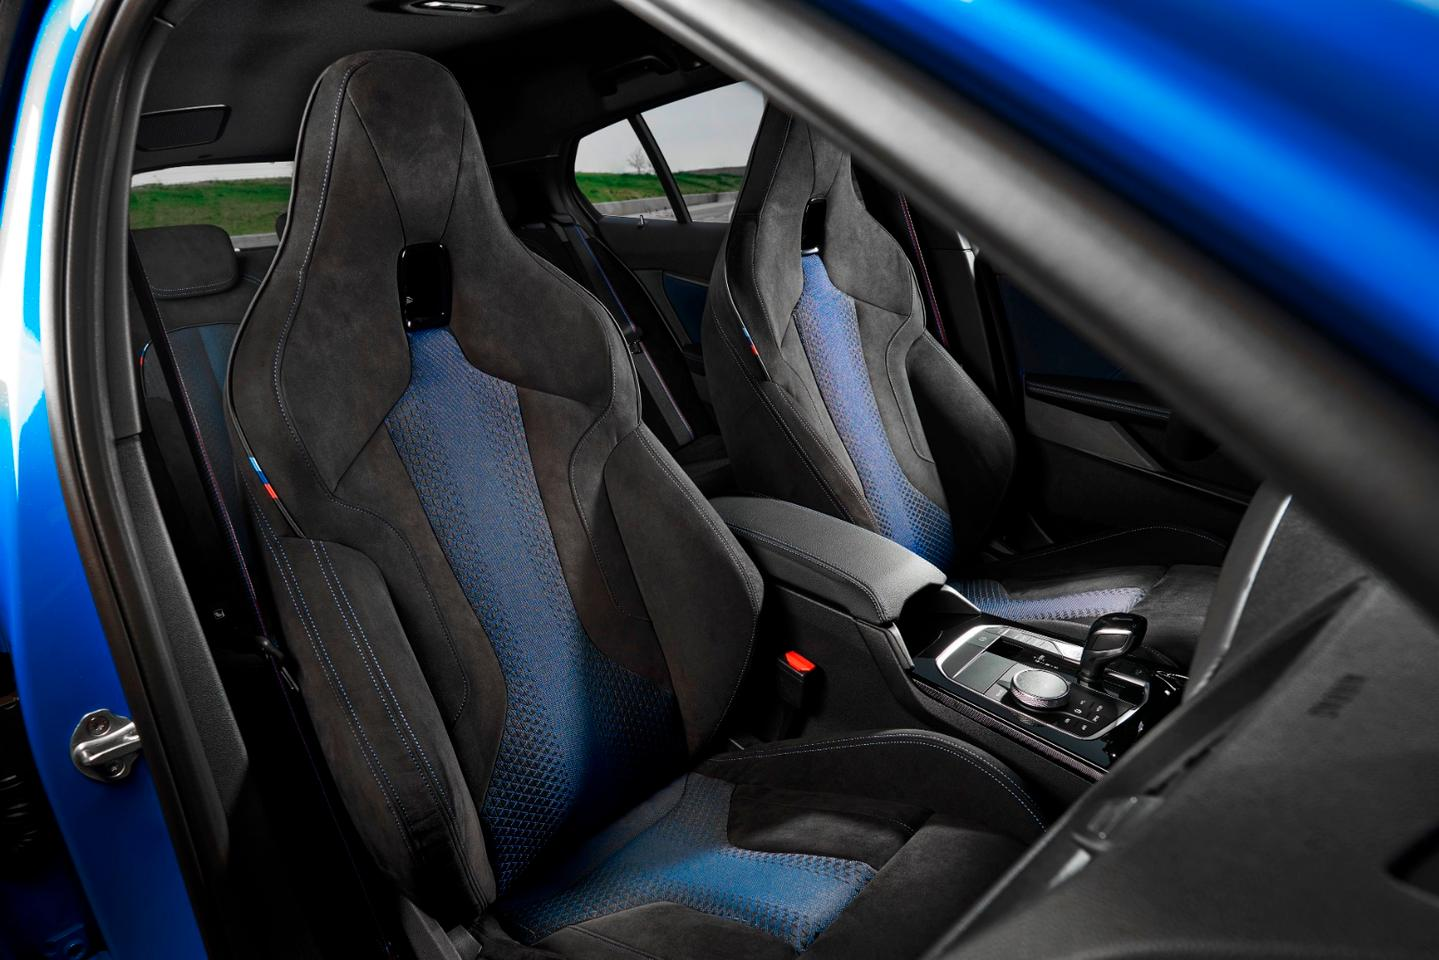 Interior of the 1 Series M-spec looks great